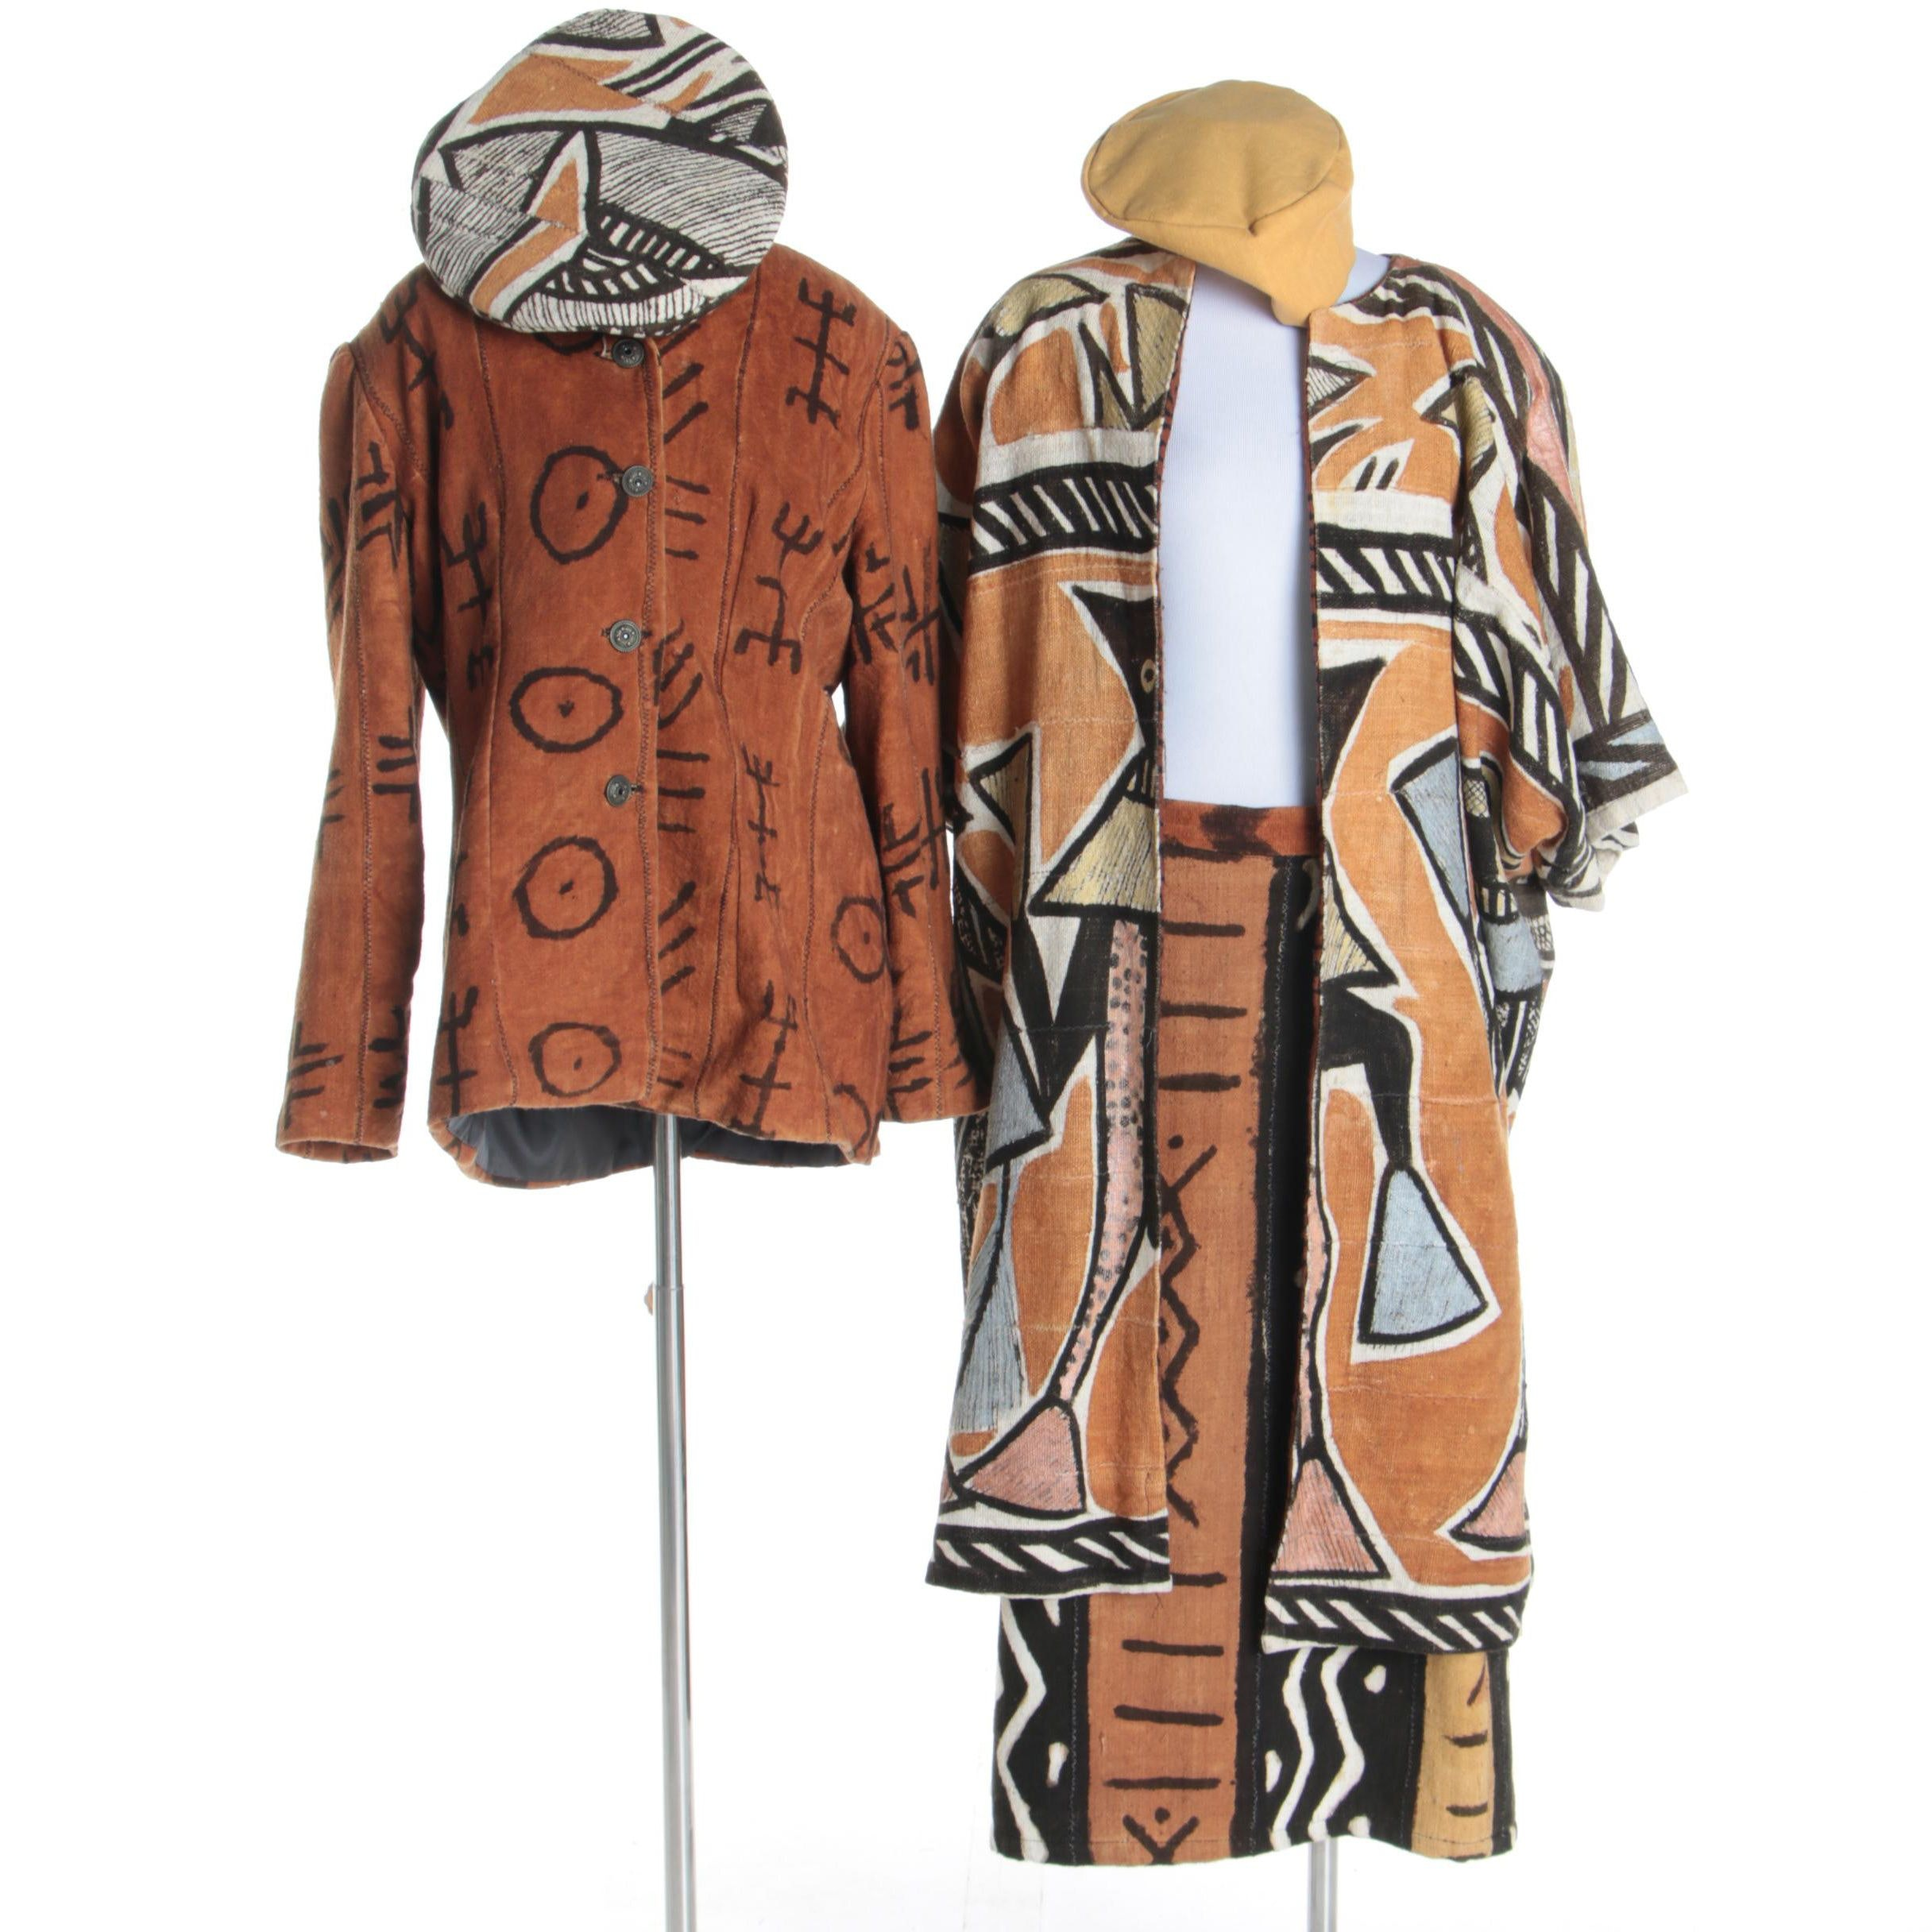 Women's Vintage Handmade African Mudcloth-Style Jackets, Hats and Skirt